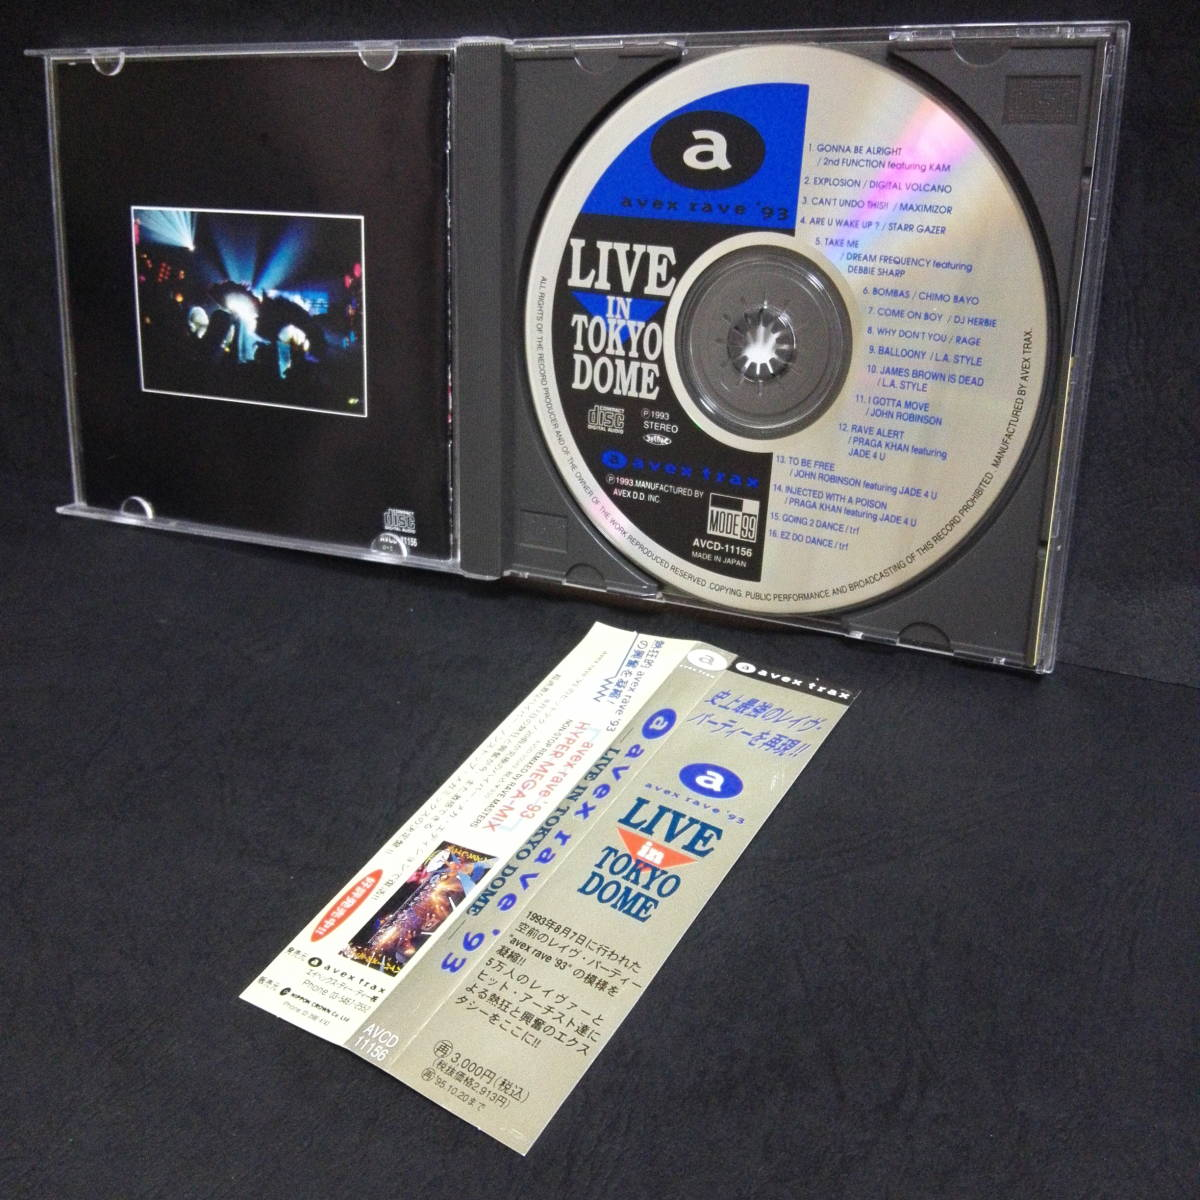 avex rave 93 LIVE in Tokyo Dome 帯付 全16曲LIVE 音源CD ジュリアナテクノ イタロ 90s DISCO JHON ROBINSON trf Maximizor L.A.STYLE_画像2